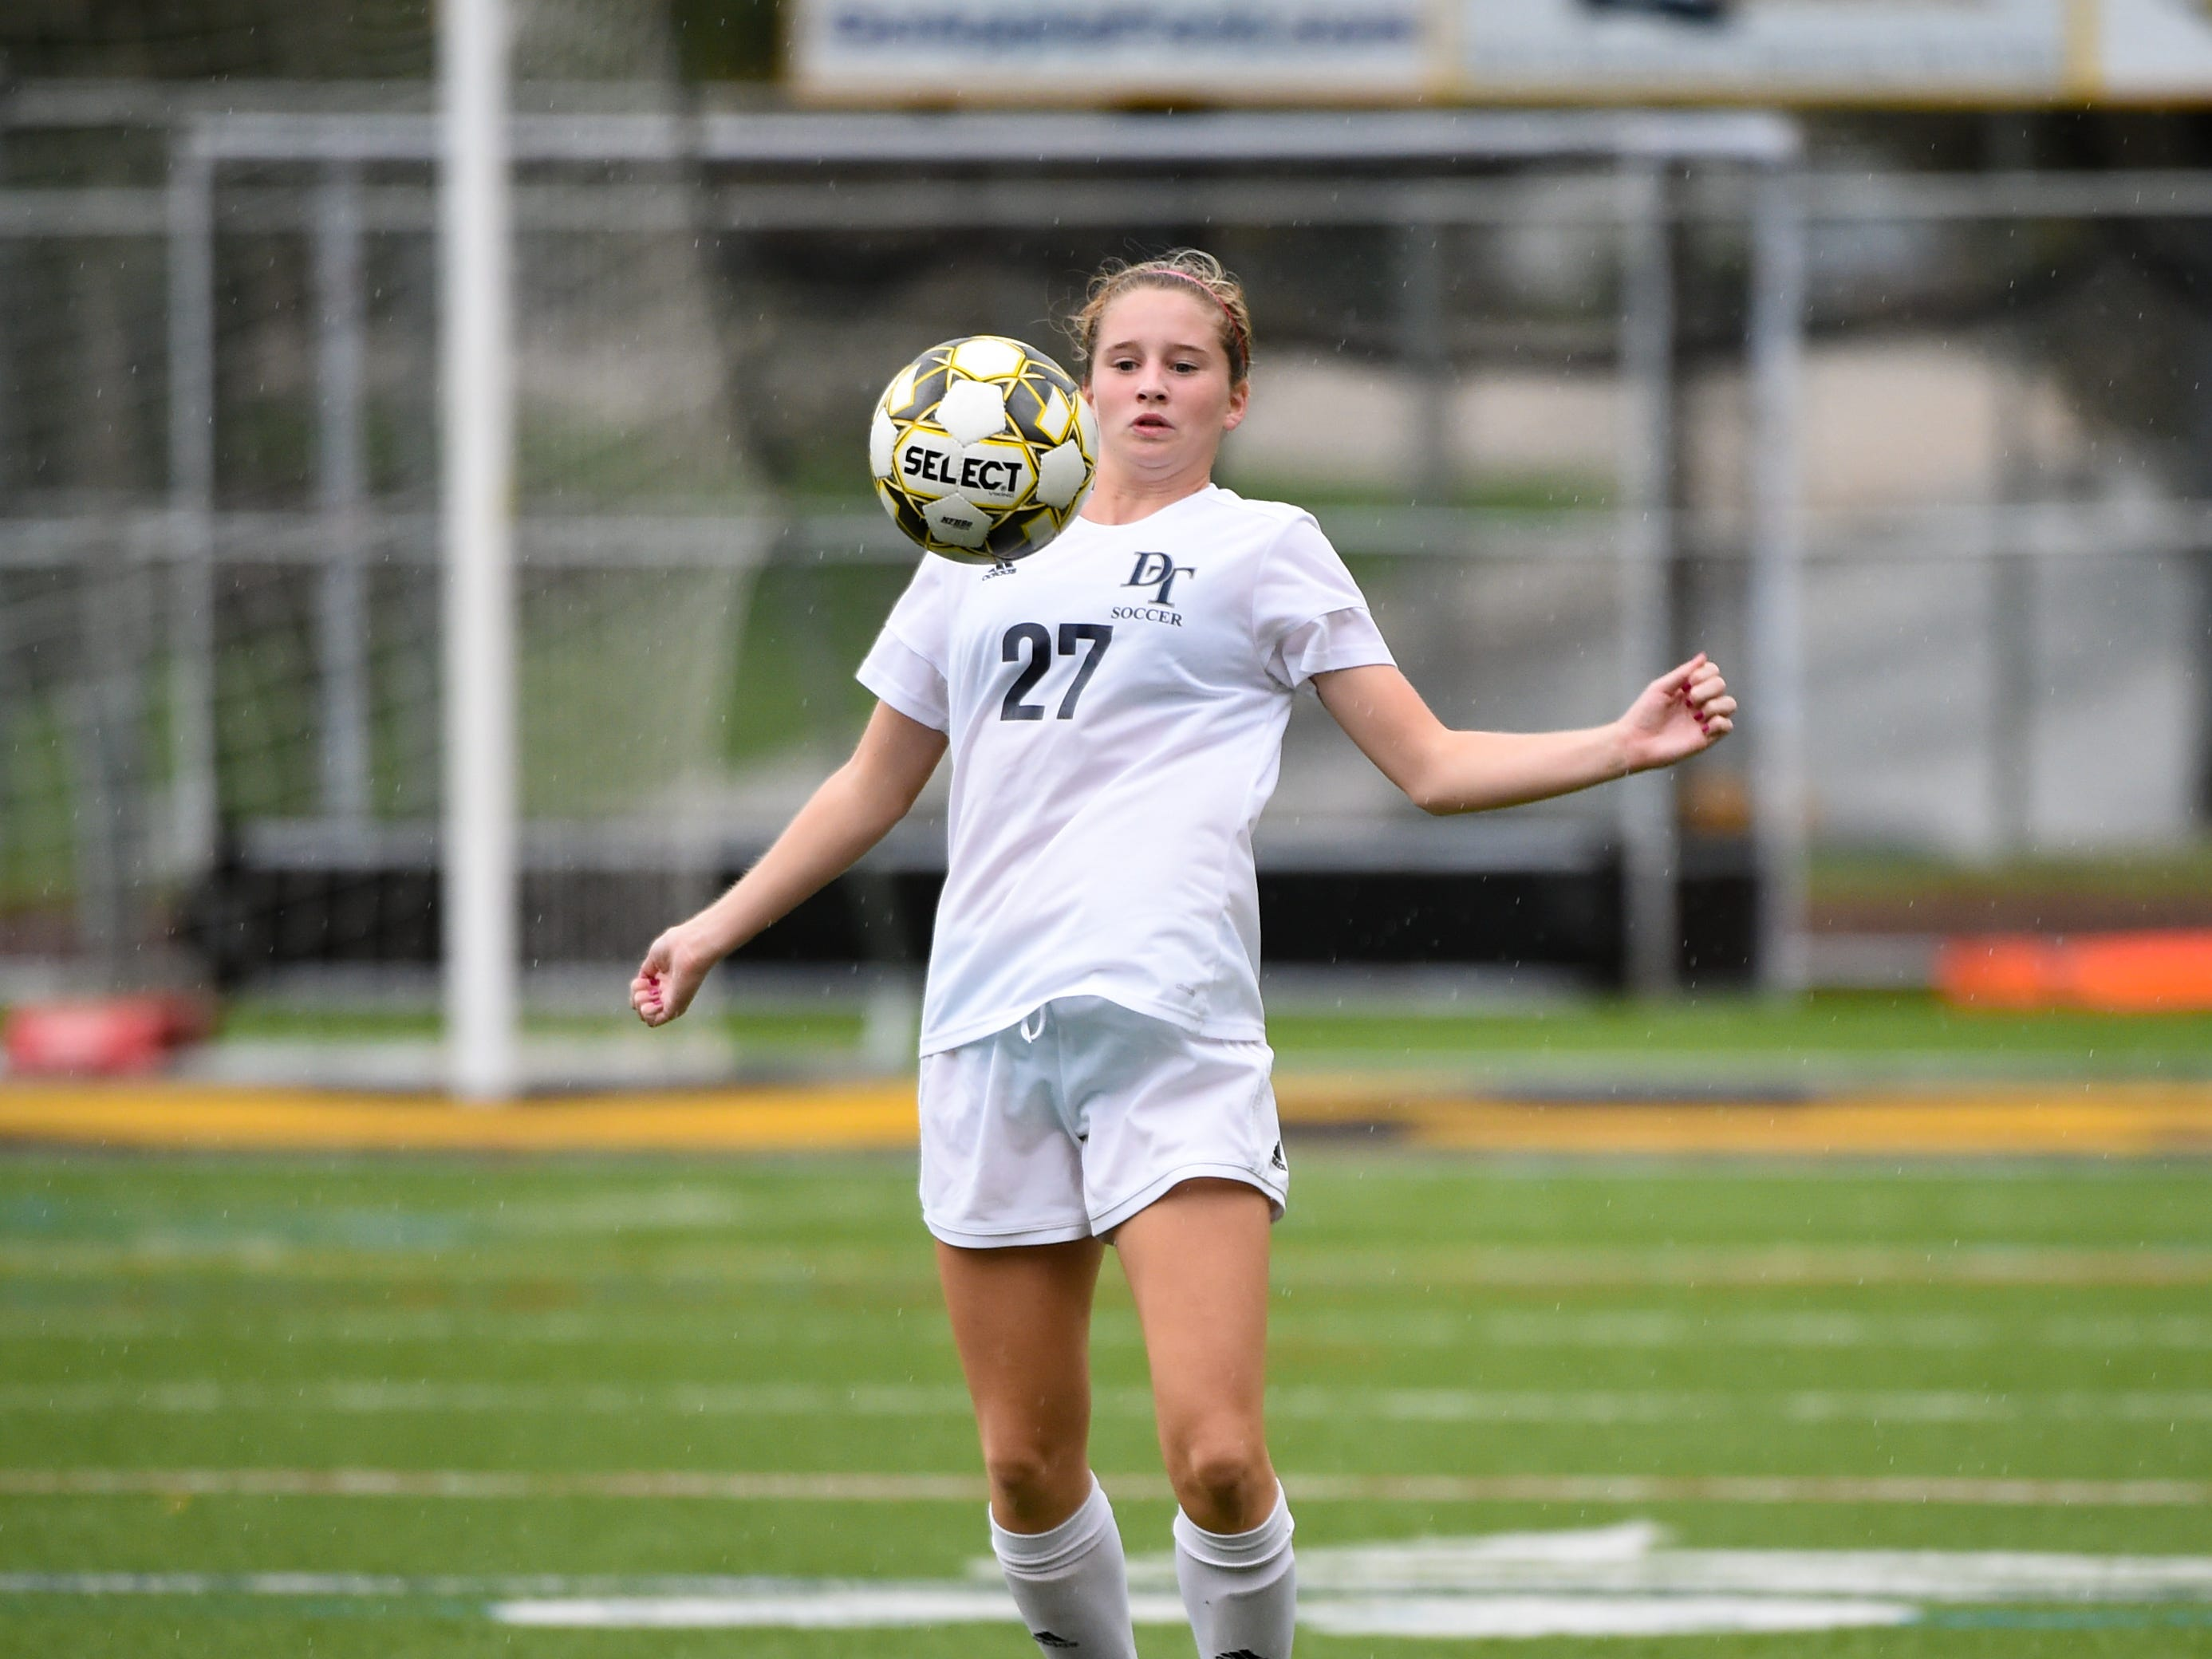 Myra Striebig (27) of Dallastown controls the ball during the girls soccer game between Red Lion and Dallastown, October 11, 2018. The Lady Lions beat the Wildcats 4-0.